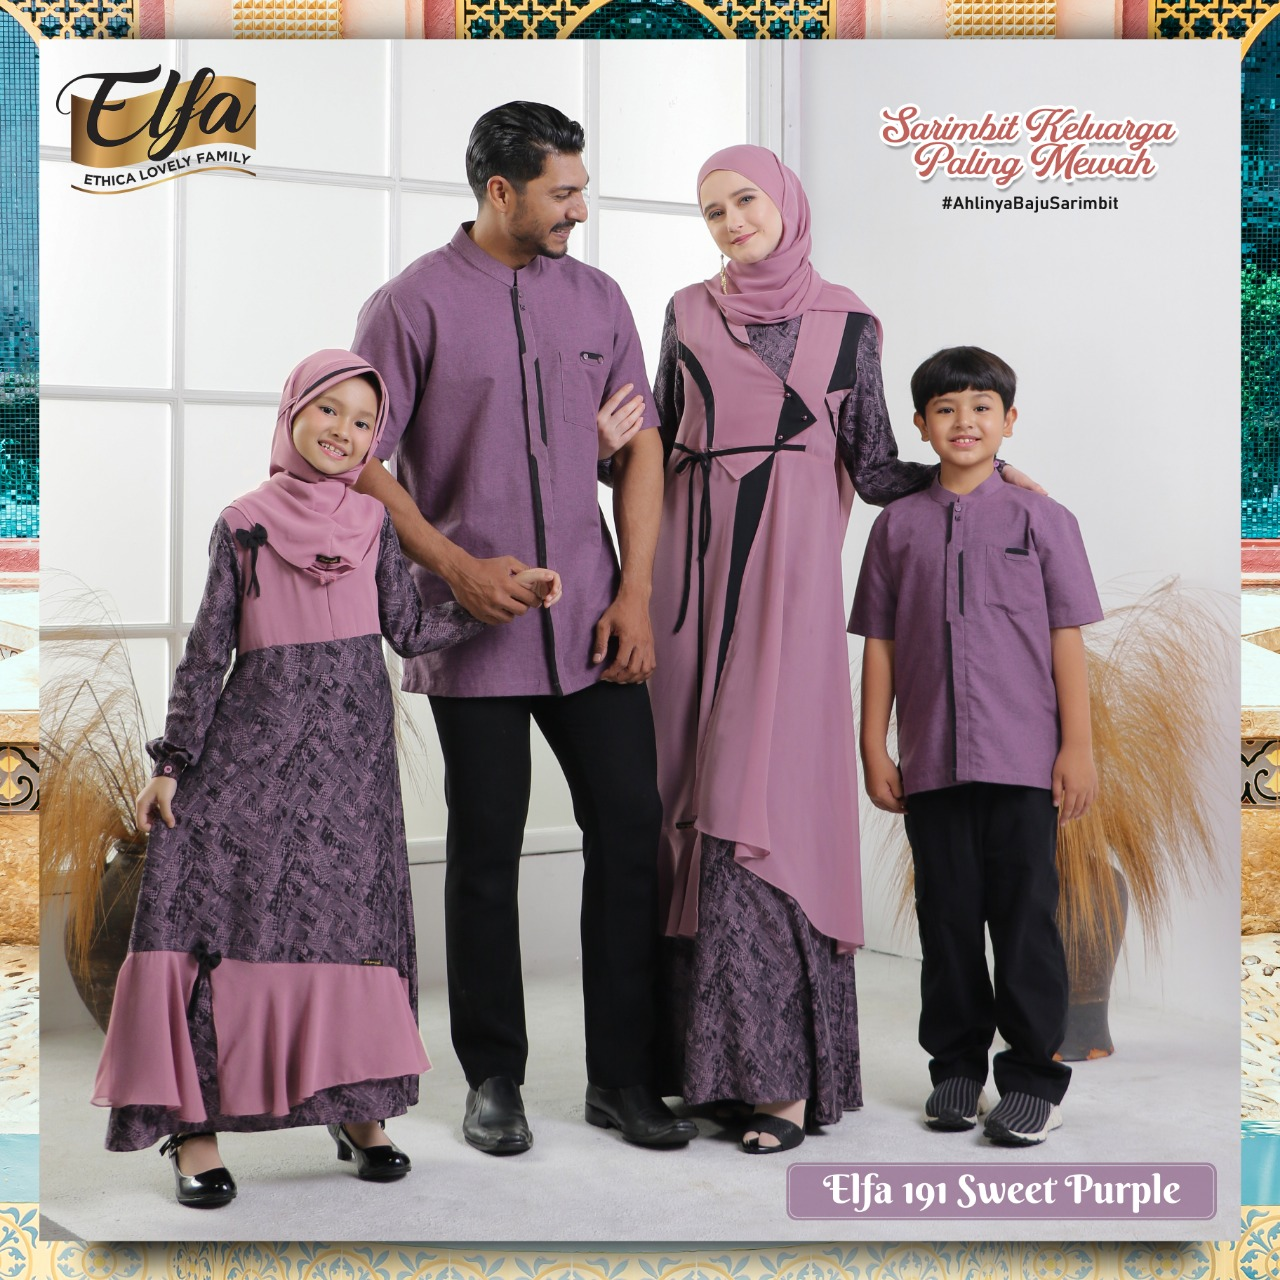 Sarimbit Ethica Elfa 191 Sweet Purple